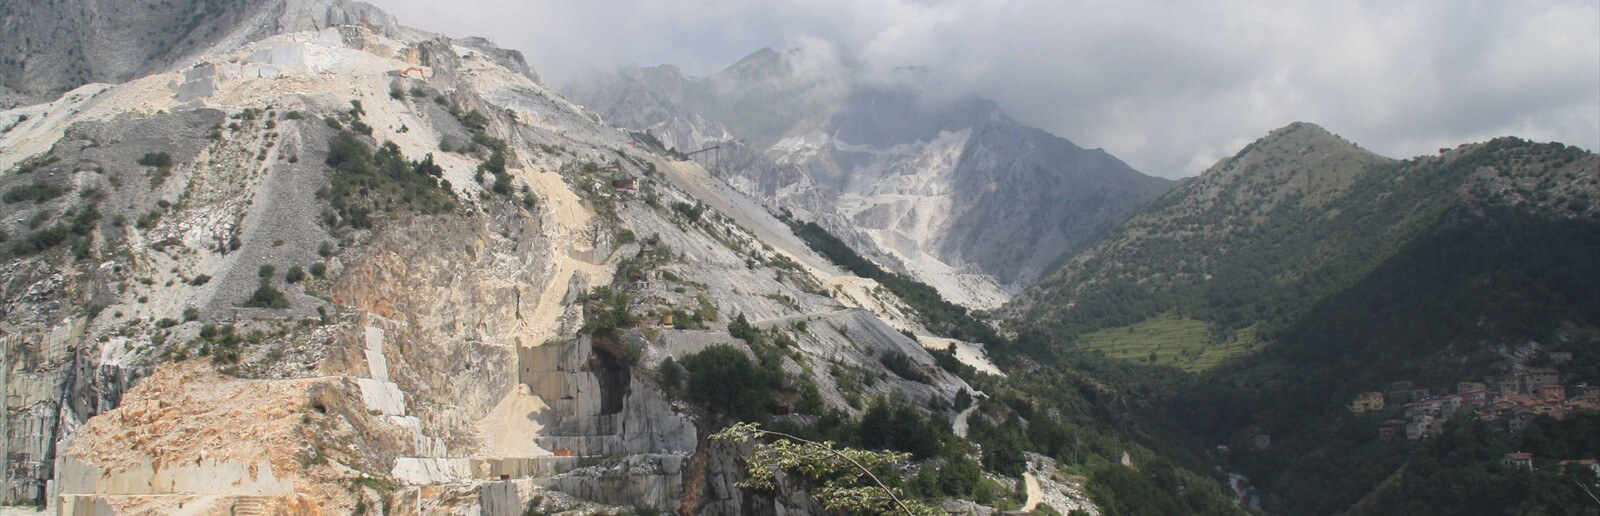 Quarries in the Carrara mountains Italy